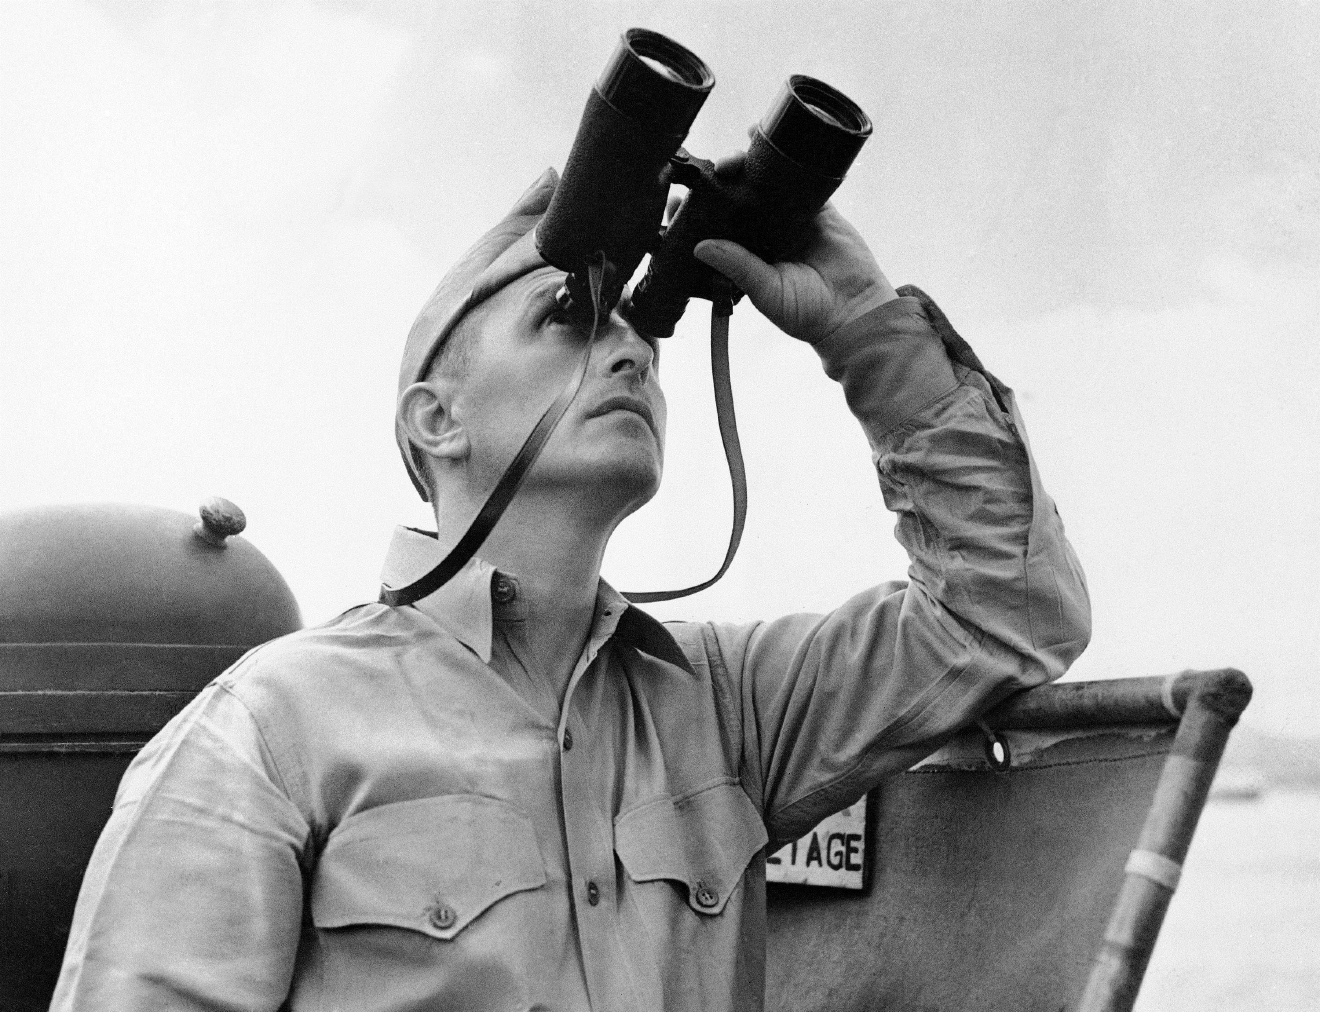 Eugene Burns, Associated Press war correspondent with the Pacific Fleet, stands on the deck of a Navy vessel with binoculars raised as he covered operations of a task force in the South Pacific in October 1942. (AP Photo)